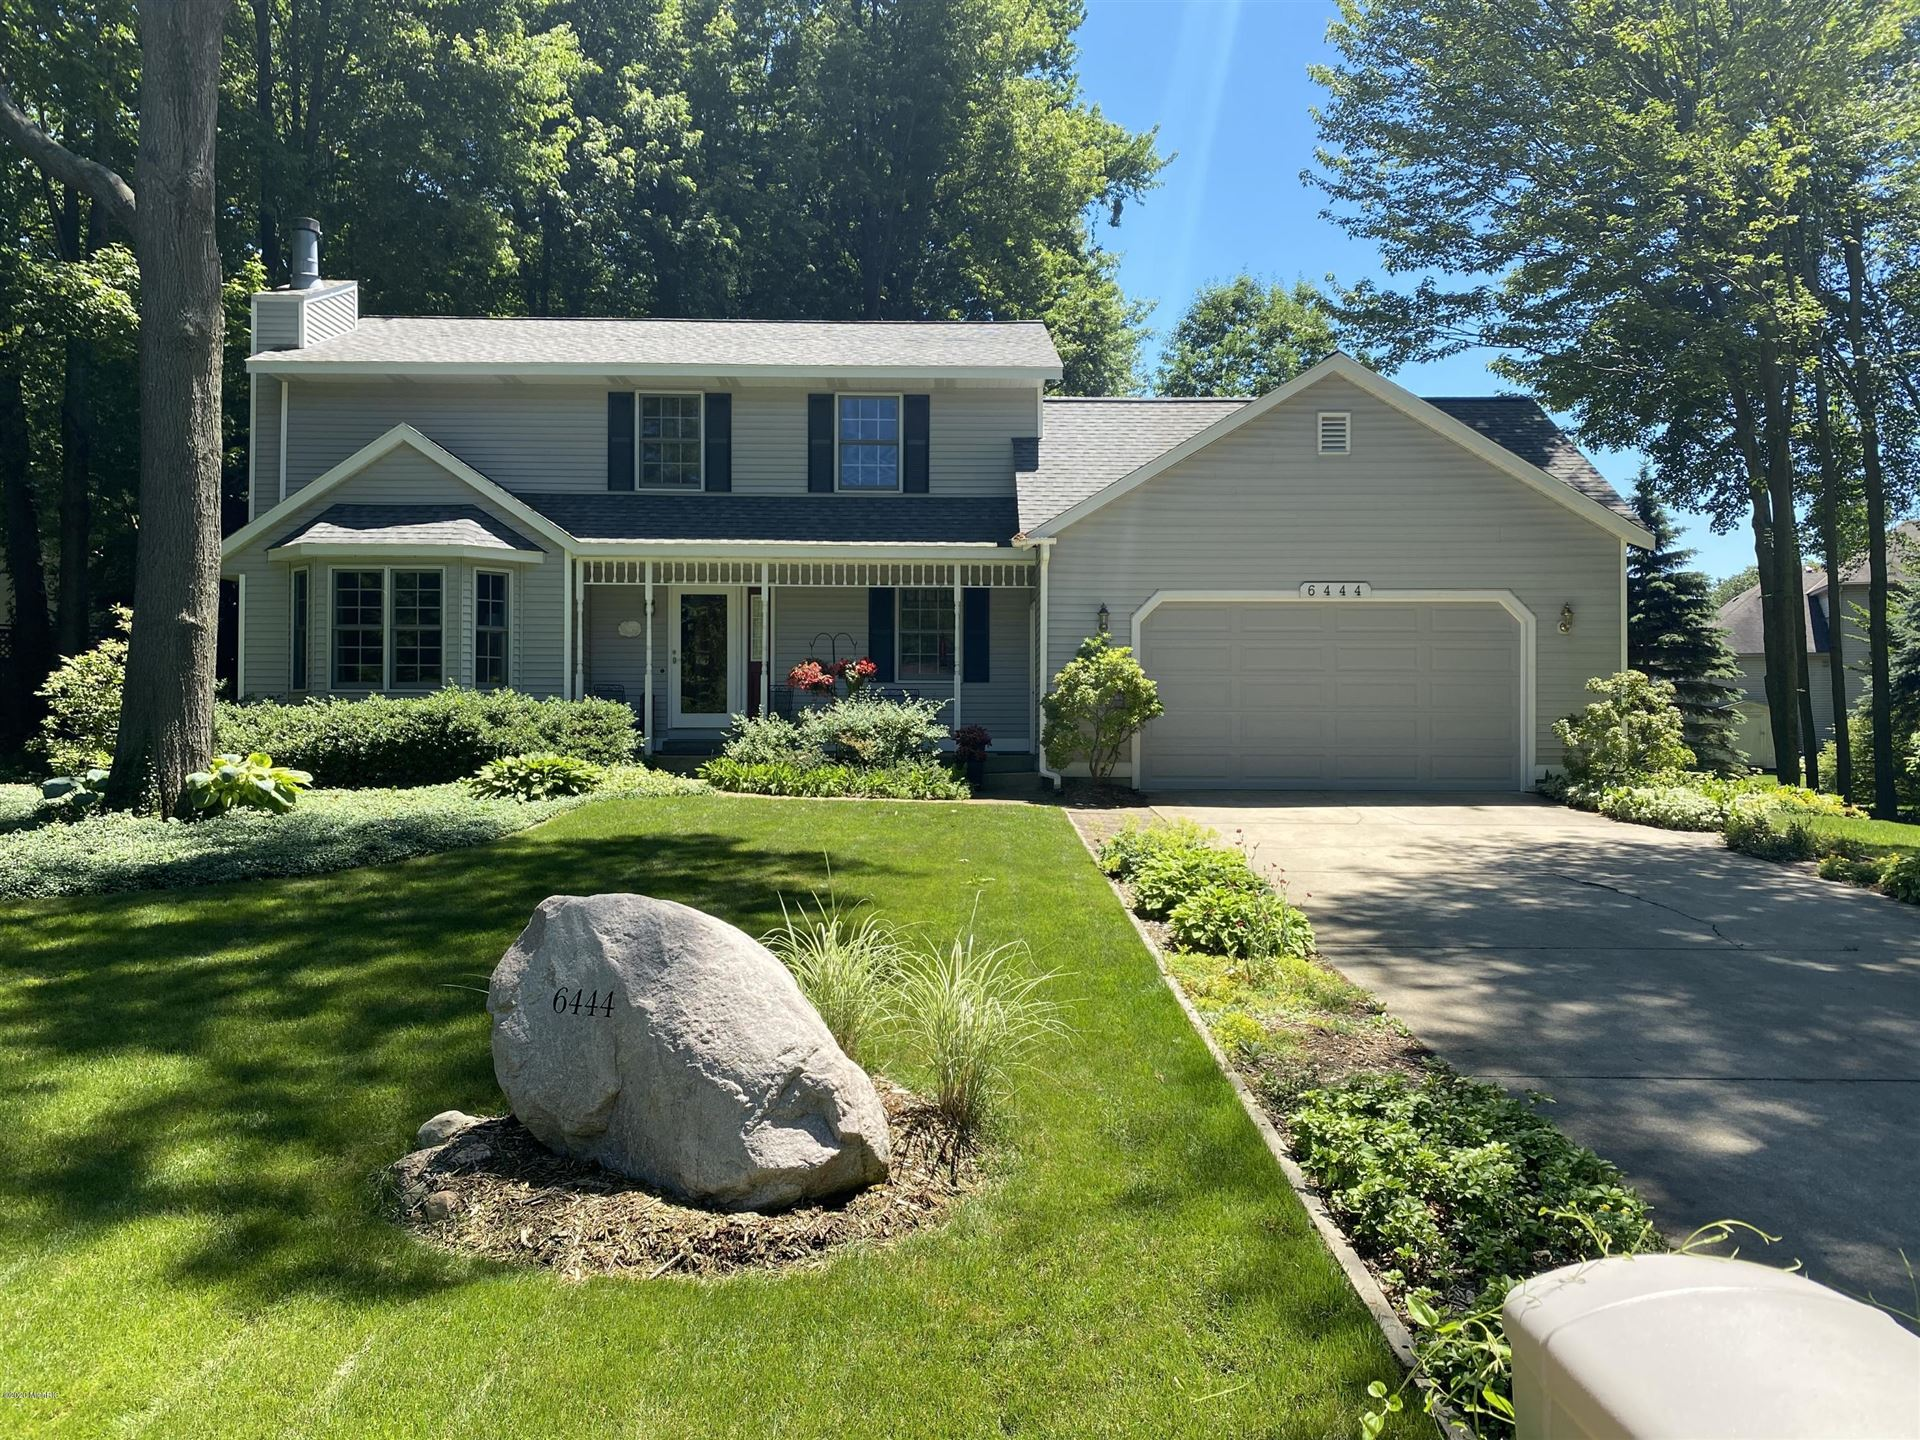 Photo of 6444 Kingsway Court, Holland, MI 49423 (MLS # 20024130)